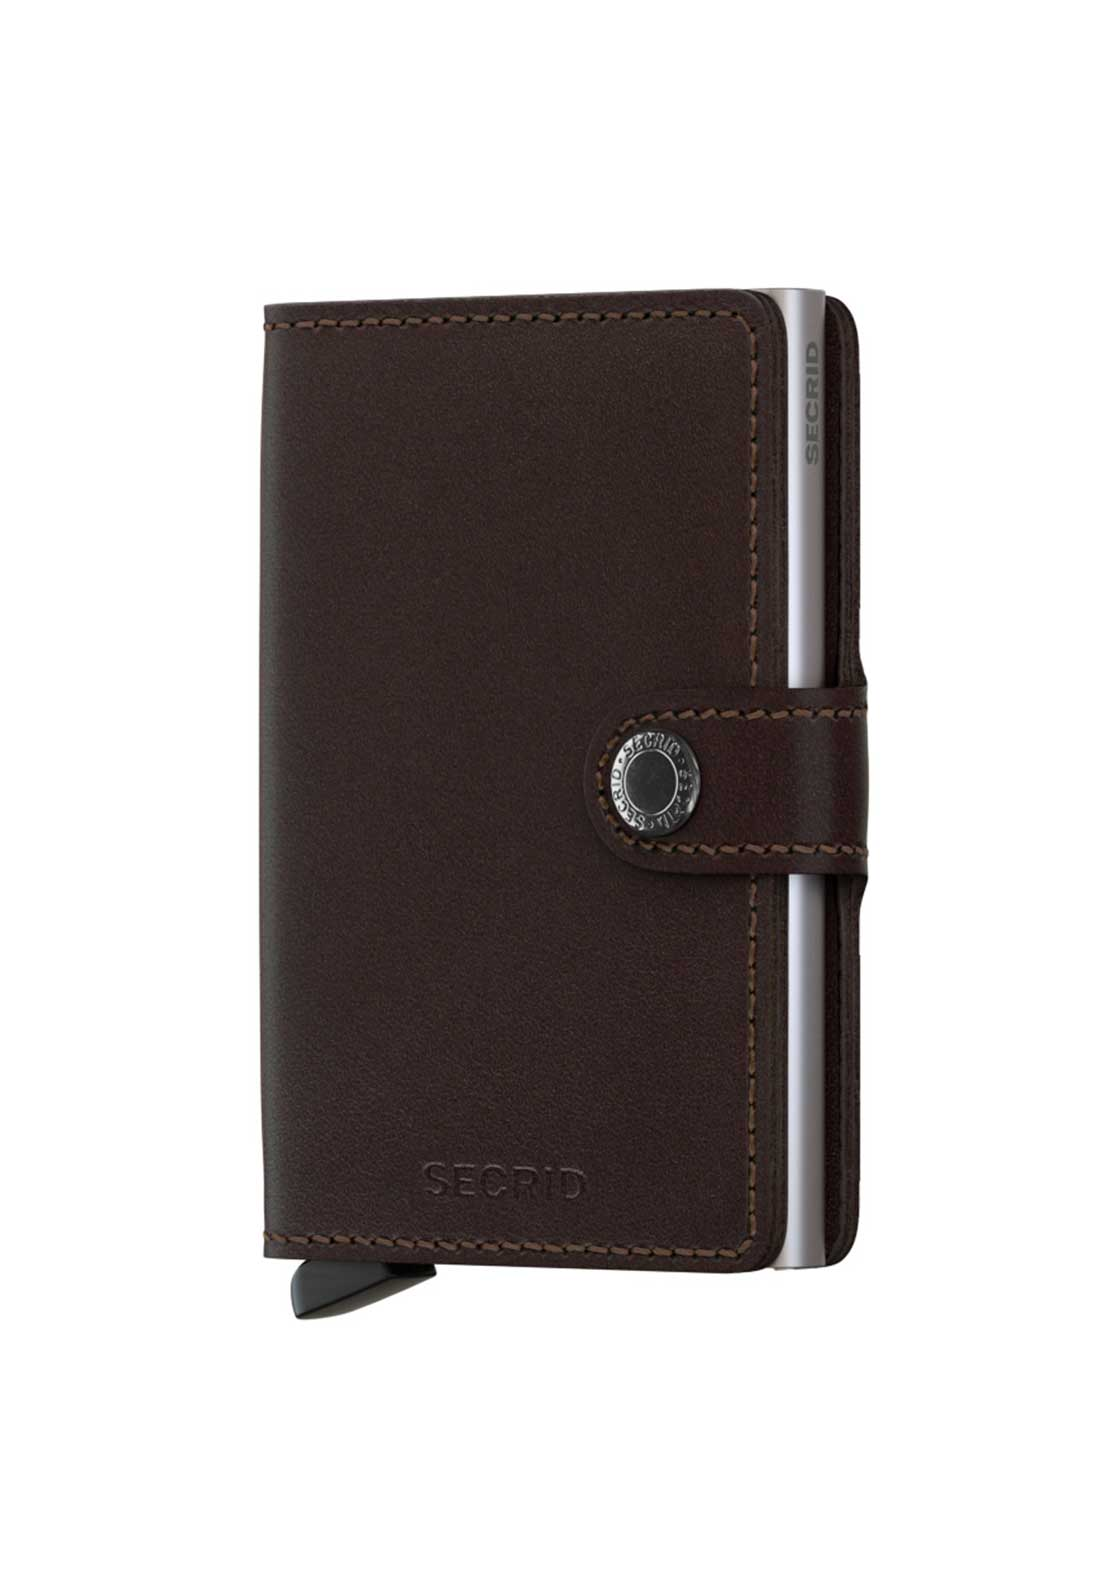 Secrid Plain Black Leather Cardprotector Miniwallet Dark Brown